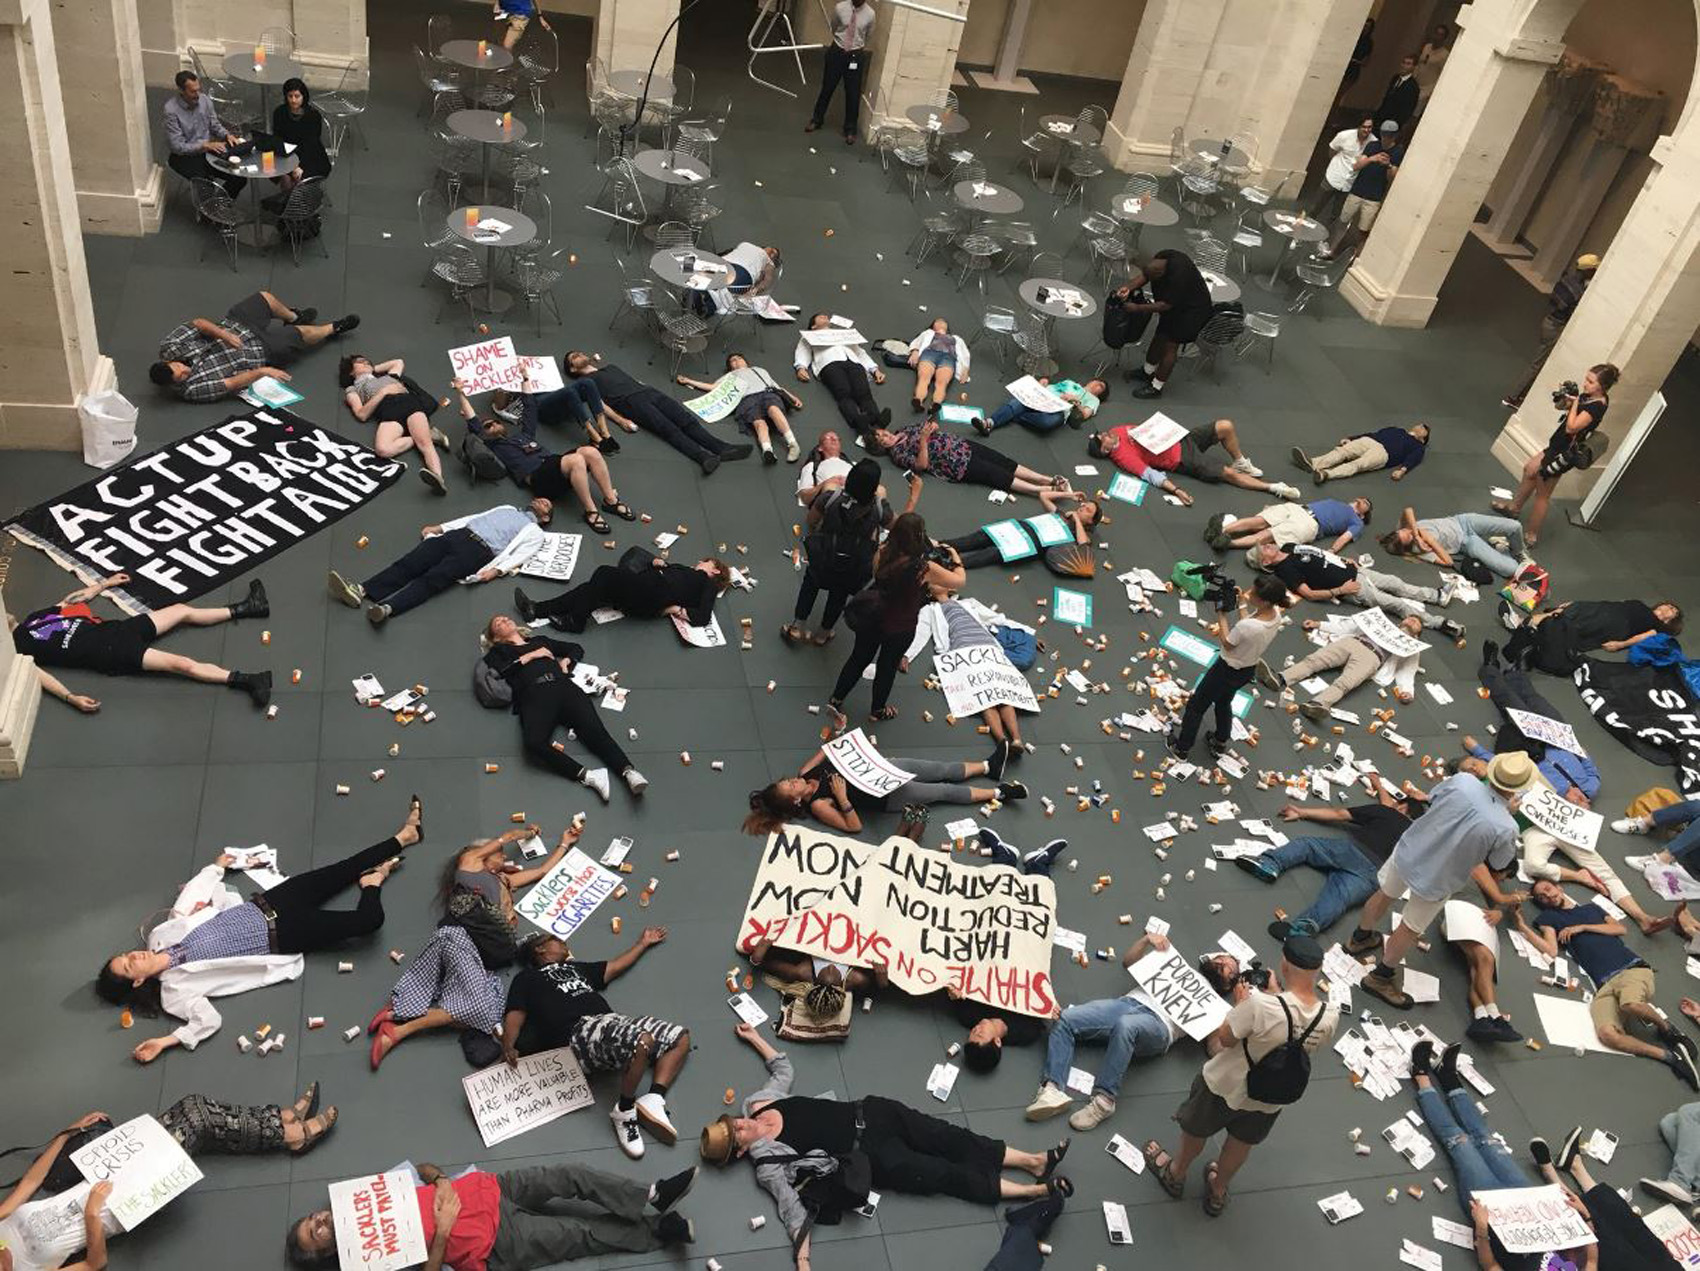 """Protesters stage a """"die-in"""" inside Harvard's Arthur M. Sackler Museum to protest the Sackler family's ties to Purdue Pharma and the opioid crisis. (Justin Kaplan/WBUR)"""